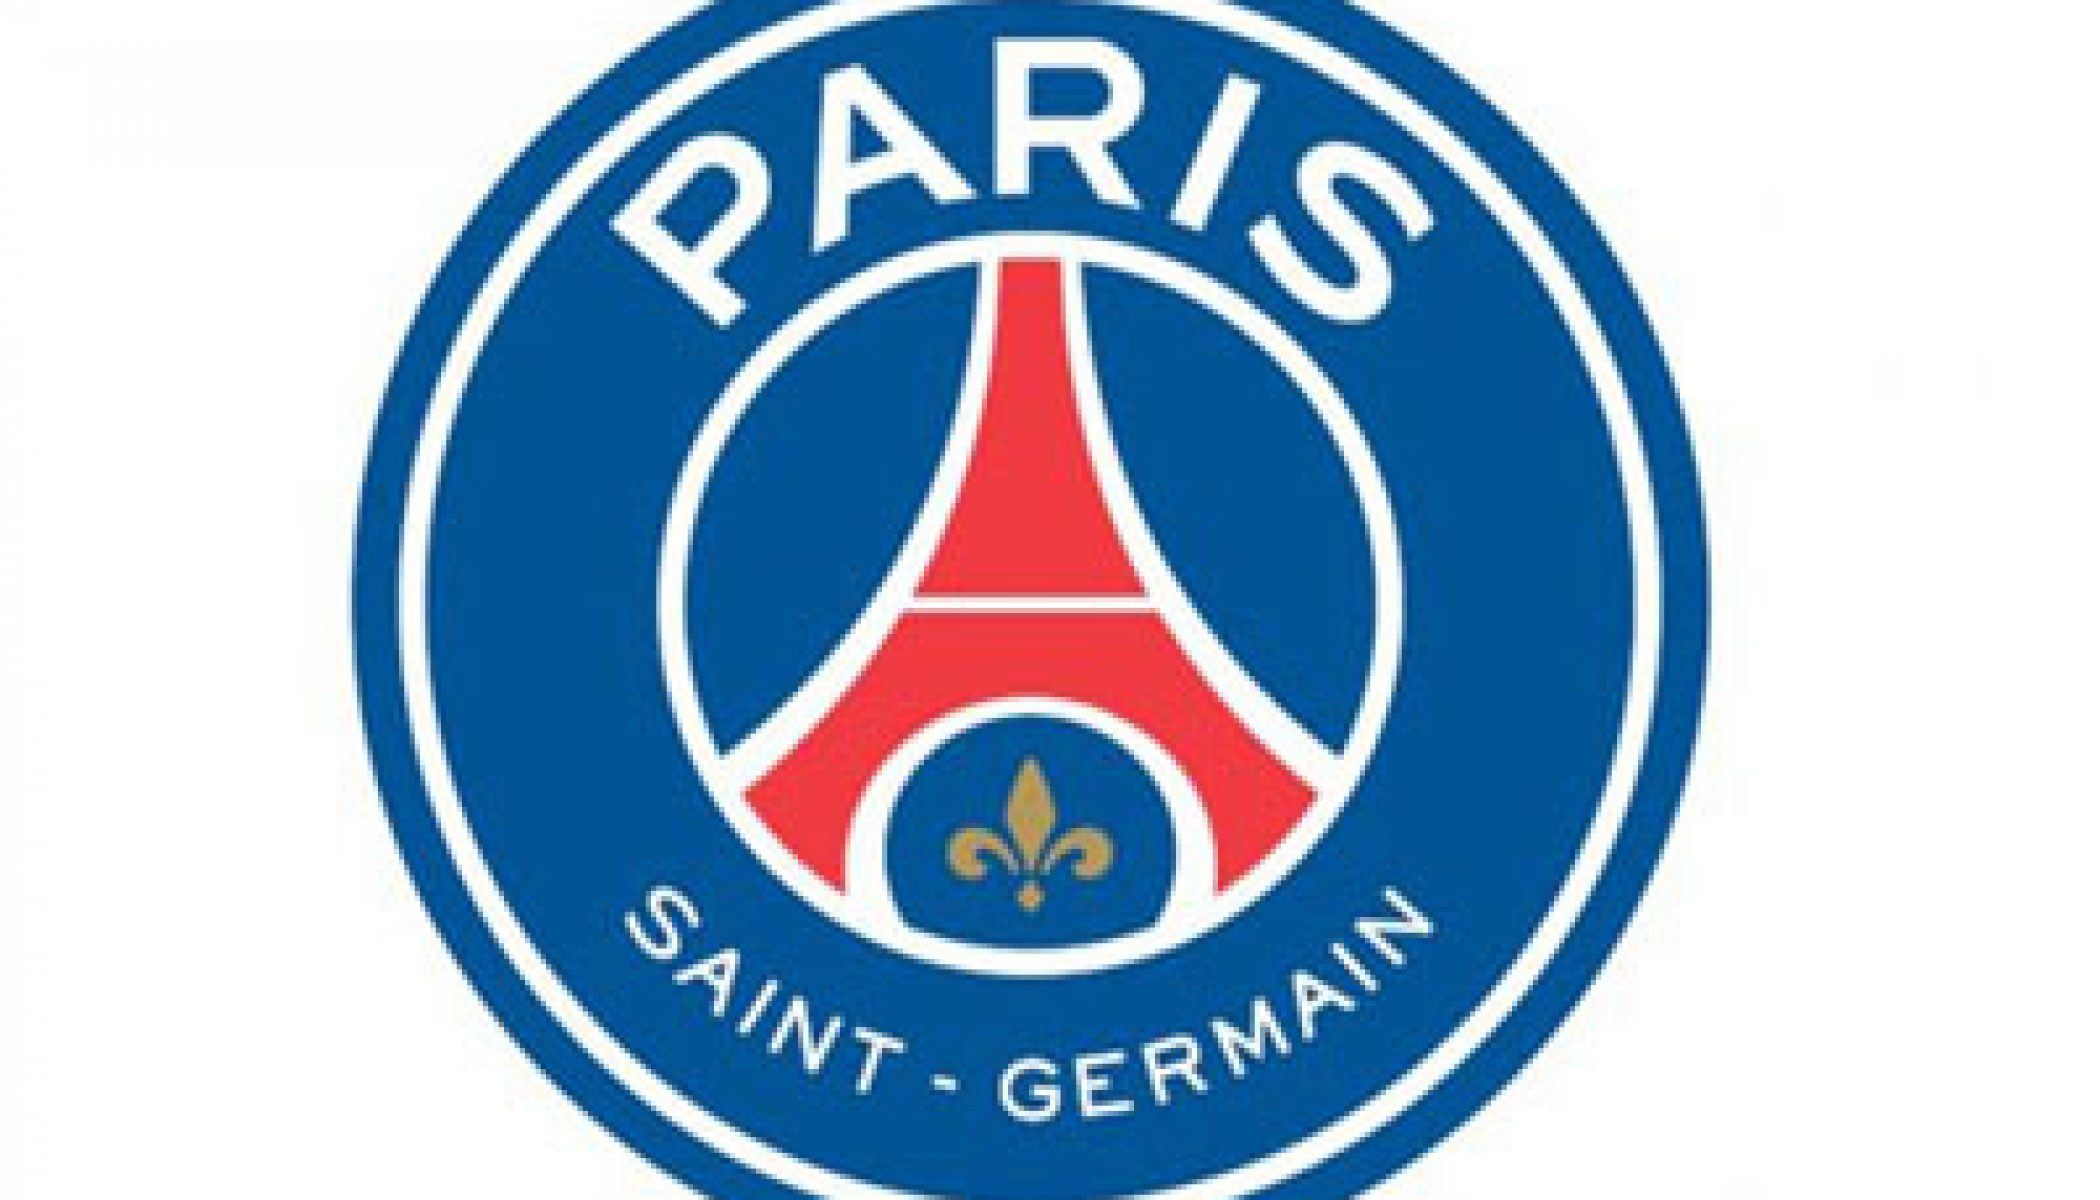 Psg Changes Brand Identity With New Logo Isportconnect